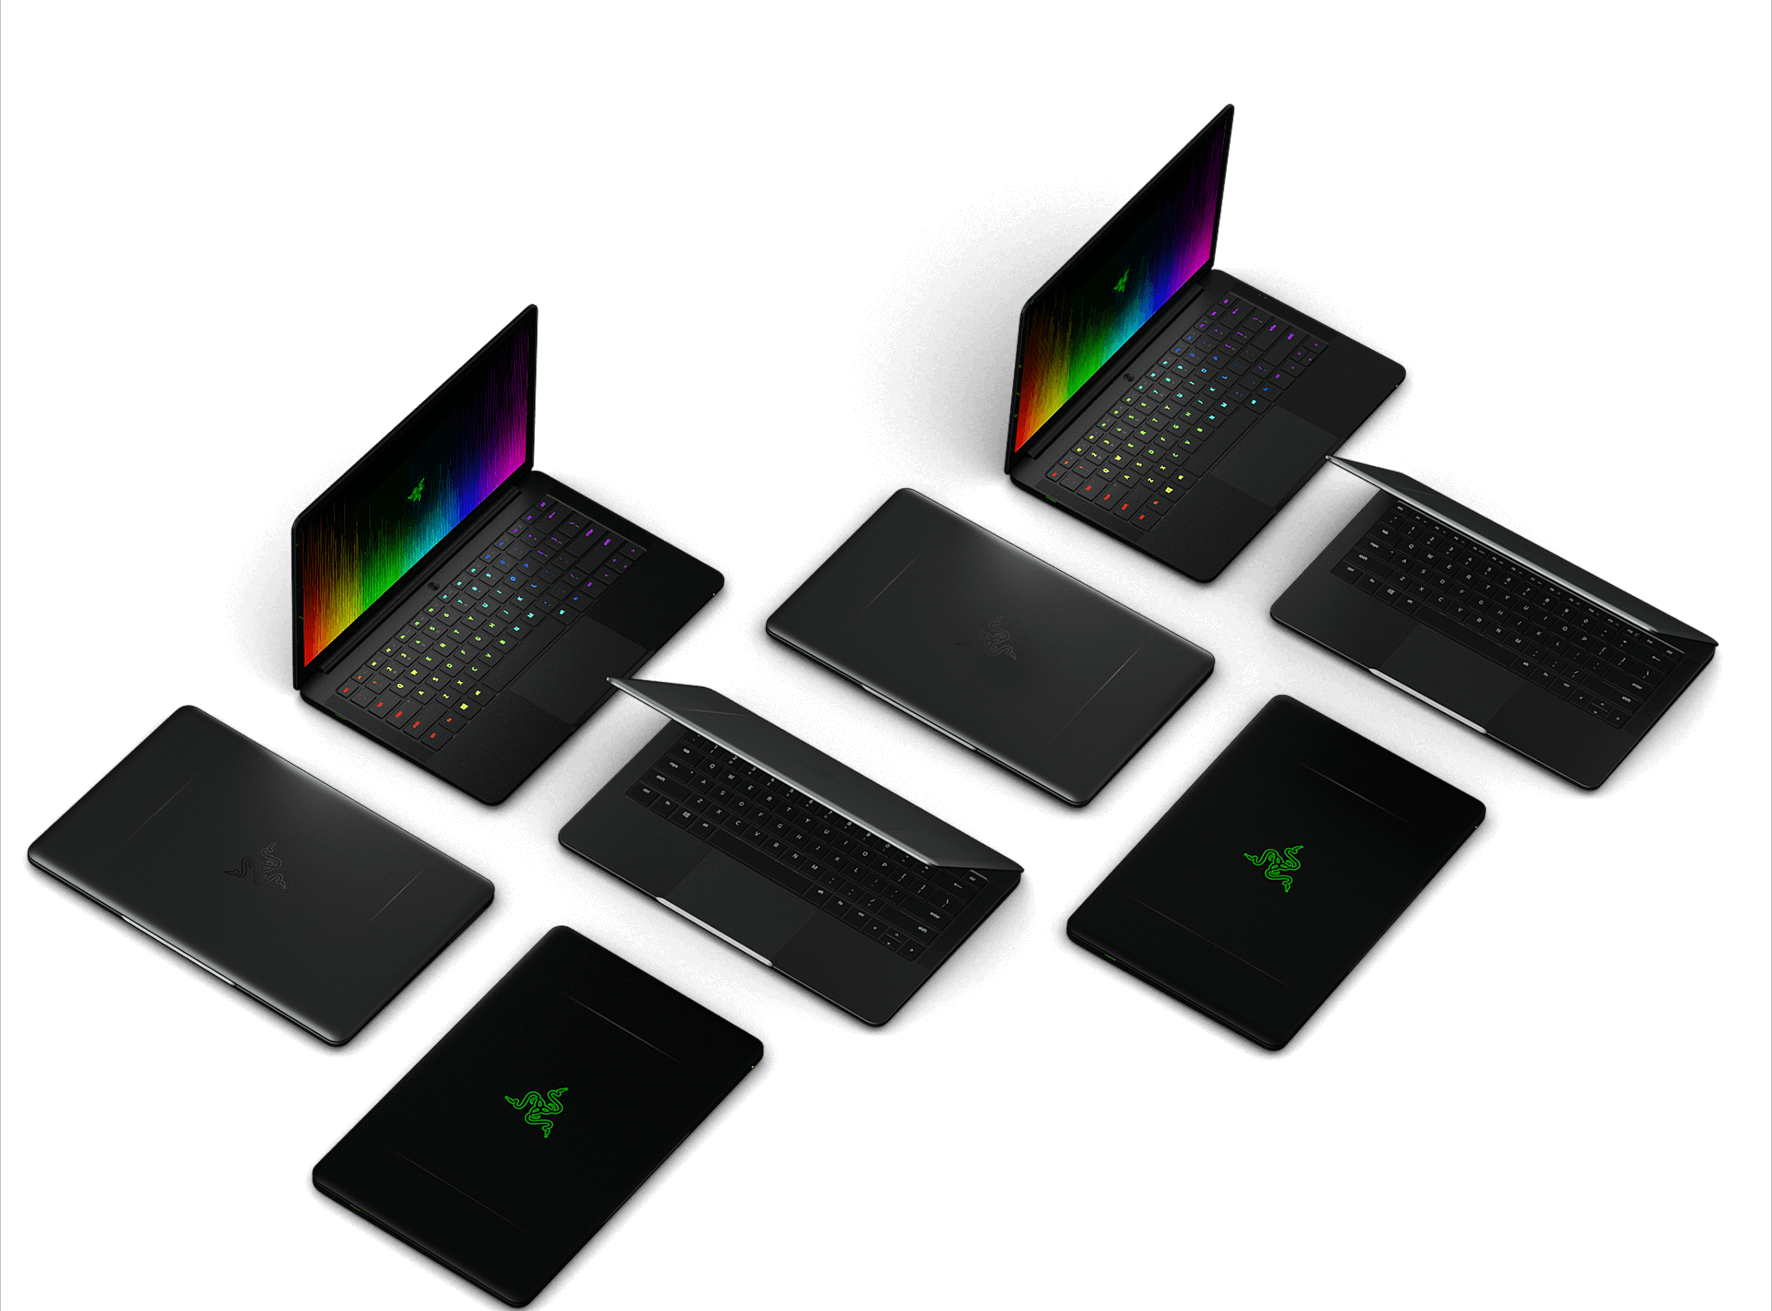 Razer Blade Stealth updated with quad-core eighth-gen processors